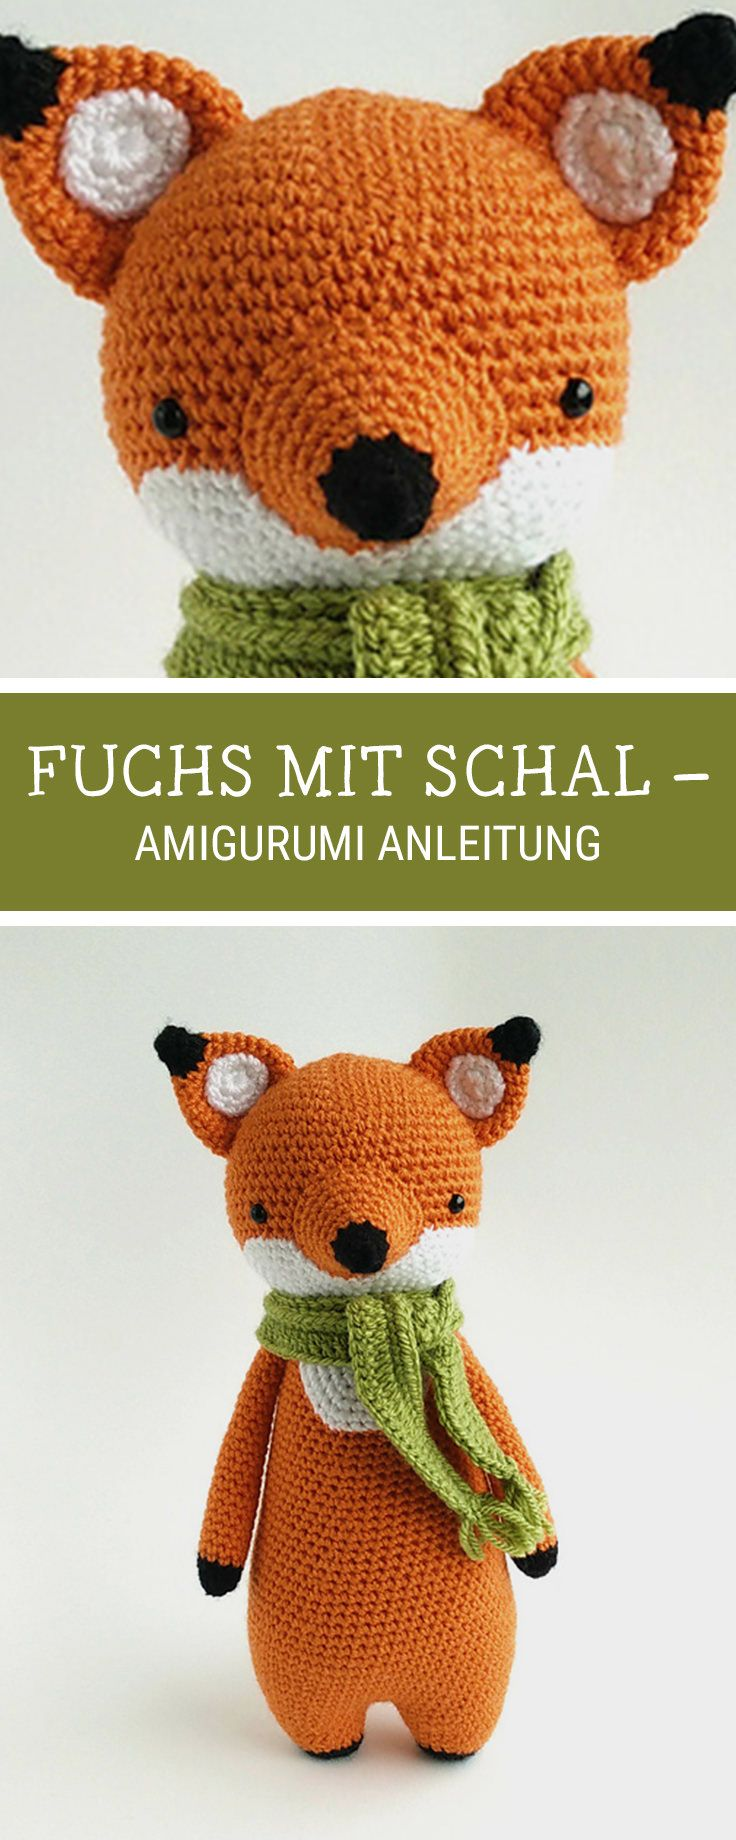 Amigurumi häkeln: Fuchs mit Schal häkeln / amigurumi pattern for a cute fox with scarf made by Little Bear Crocheted via DaWanda.com